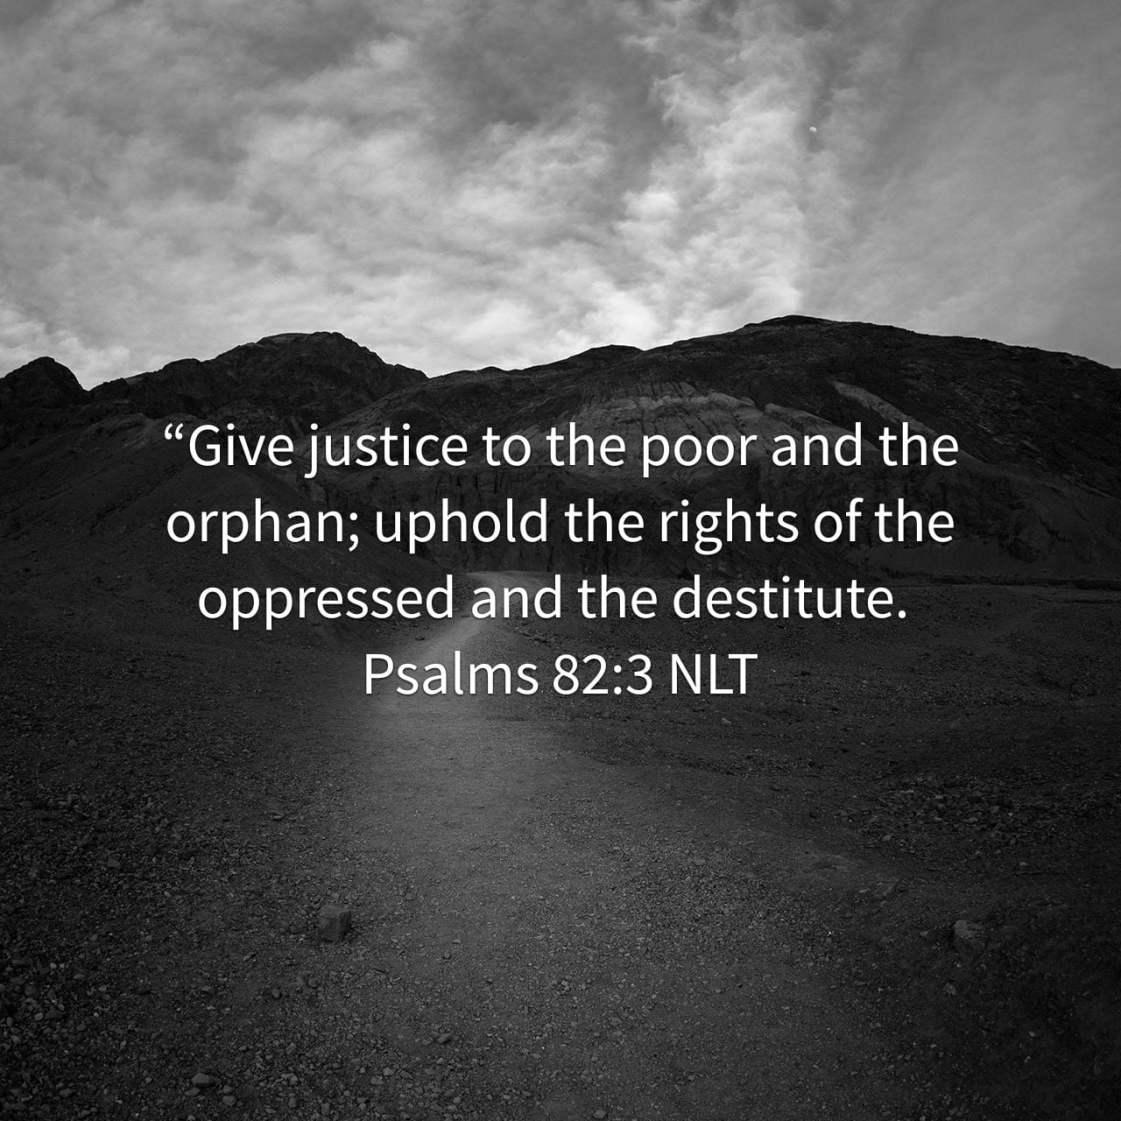 """""""Give justice to the poor and the orphan; uphold the rights of the oppressed and the destitute. - Psalms 82:3 NLT"""